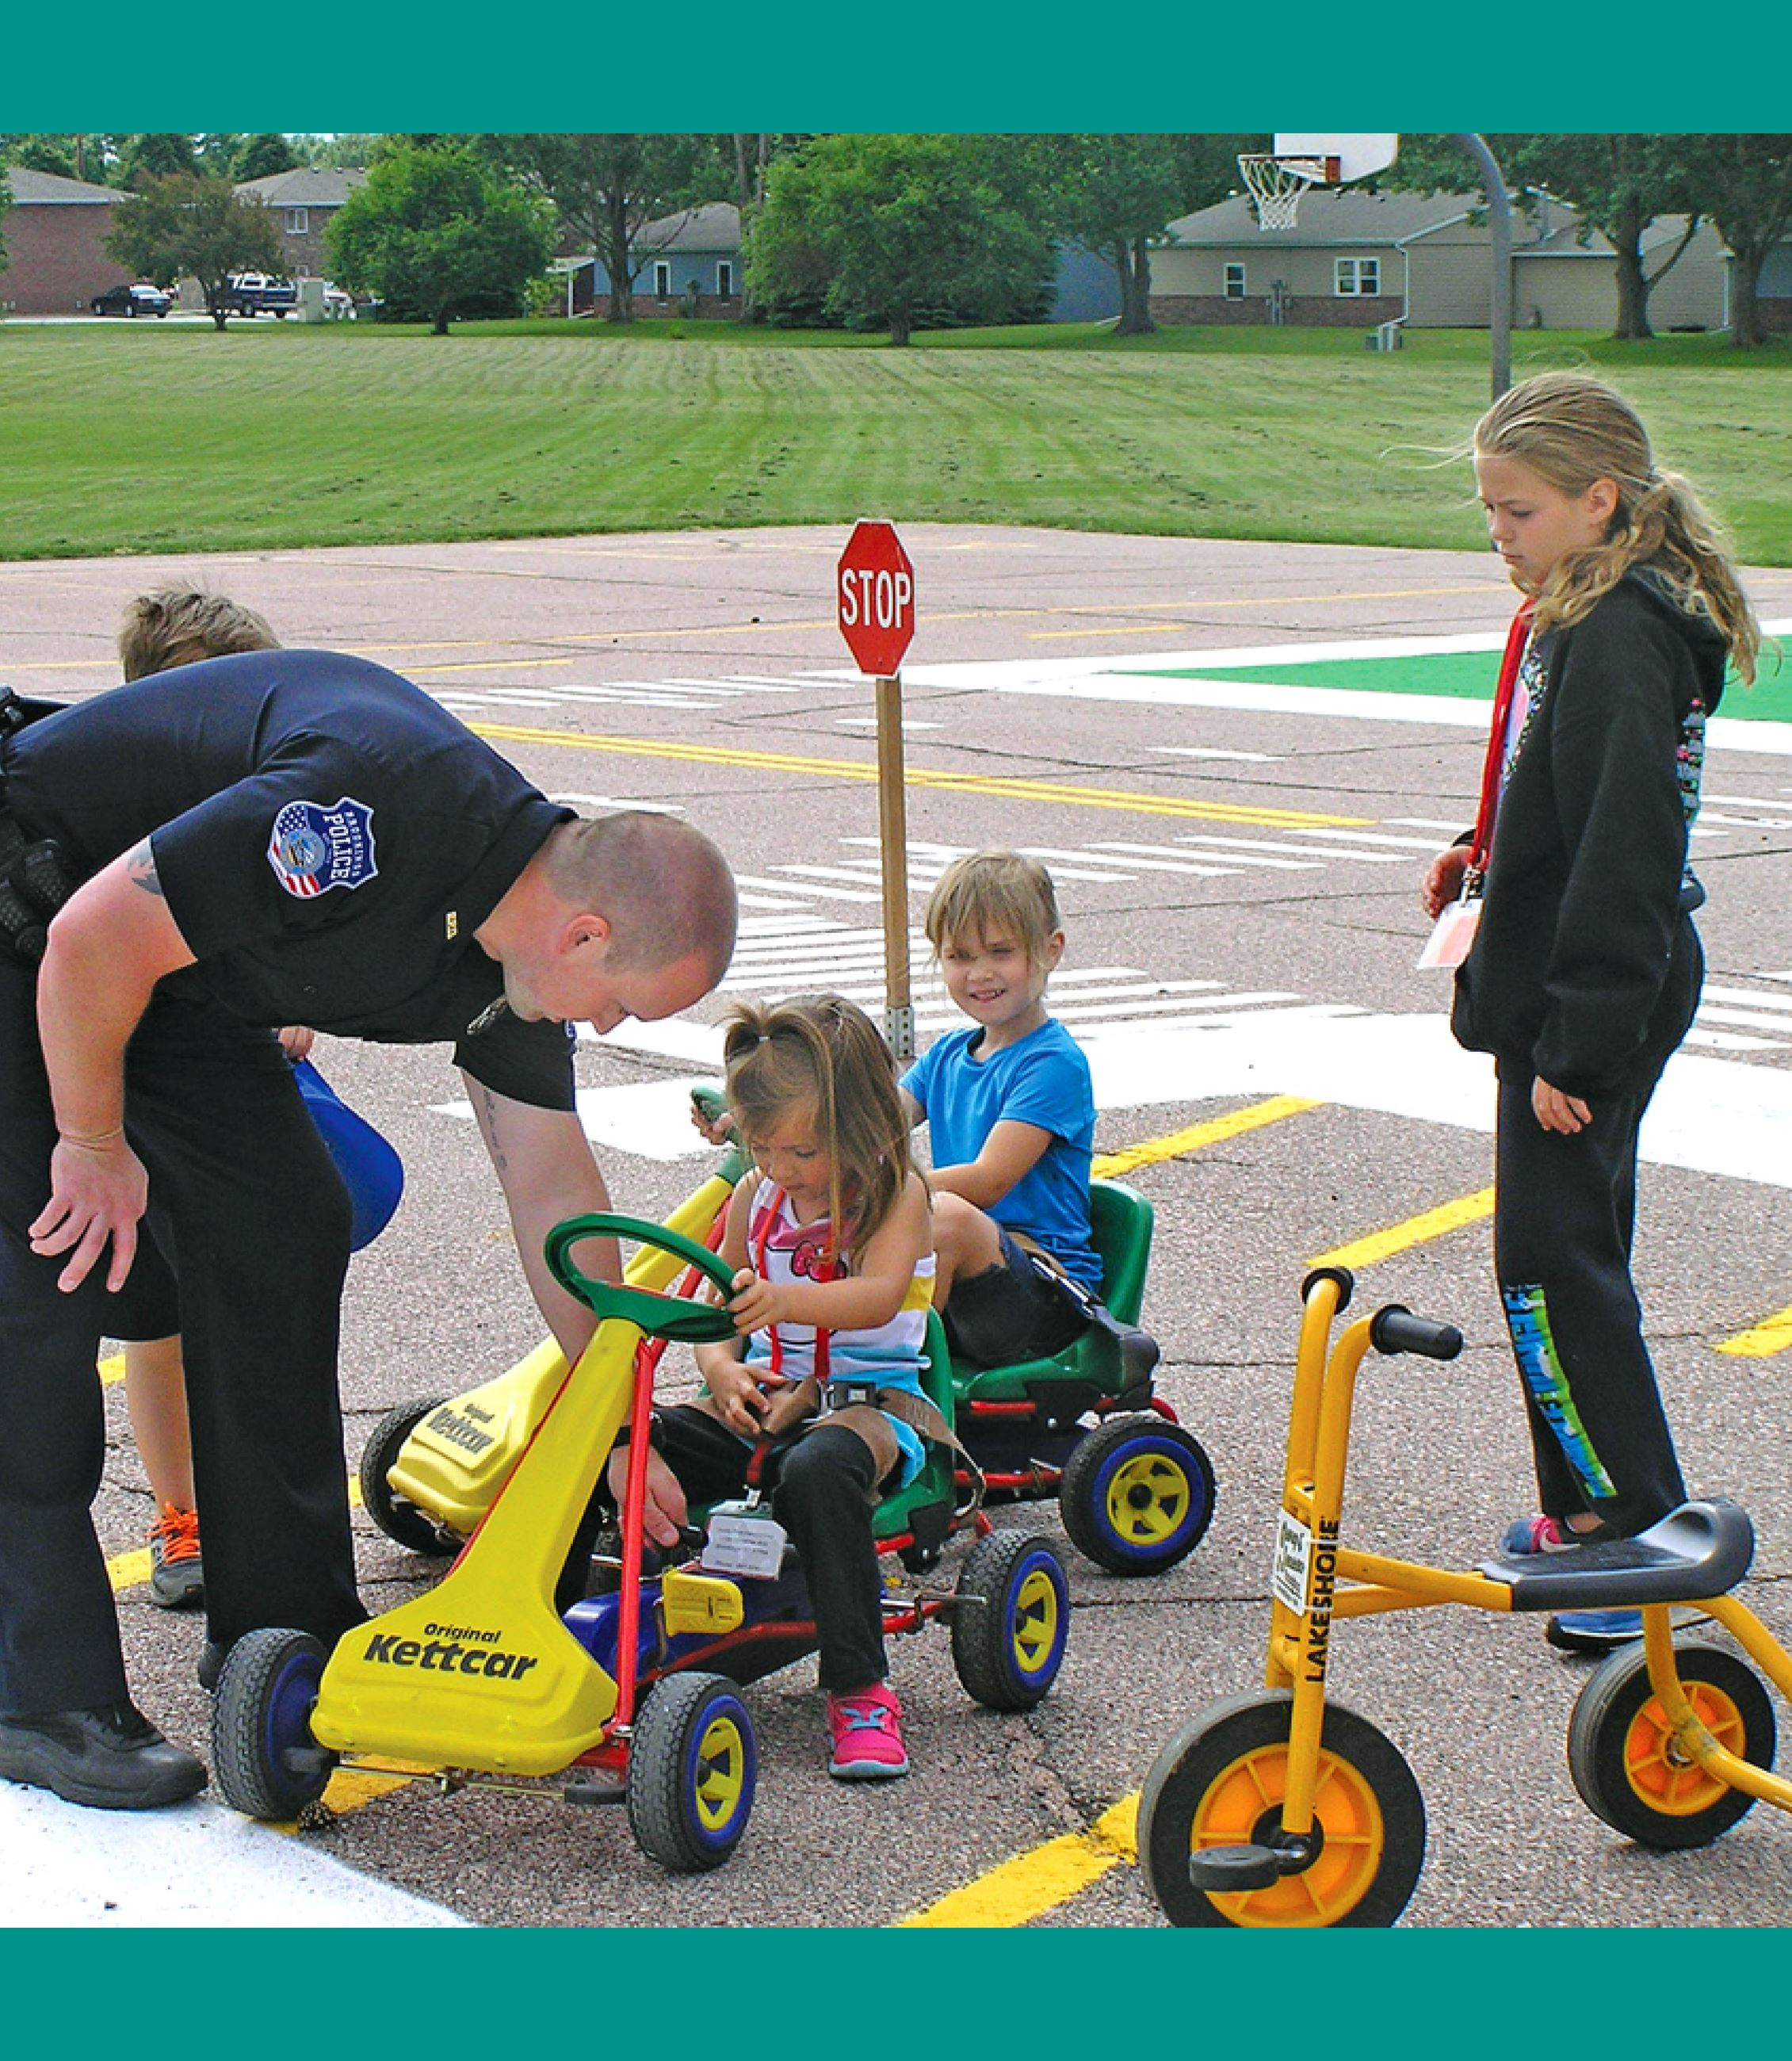 A police officer teaches children who are in peddle cars at safety town